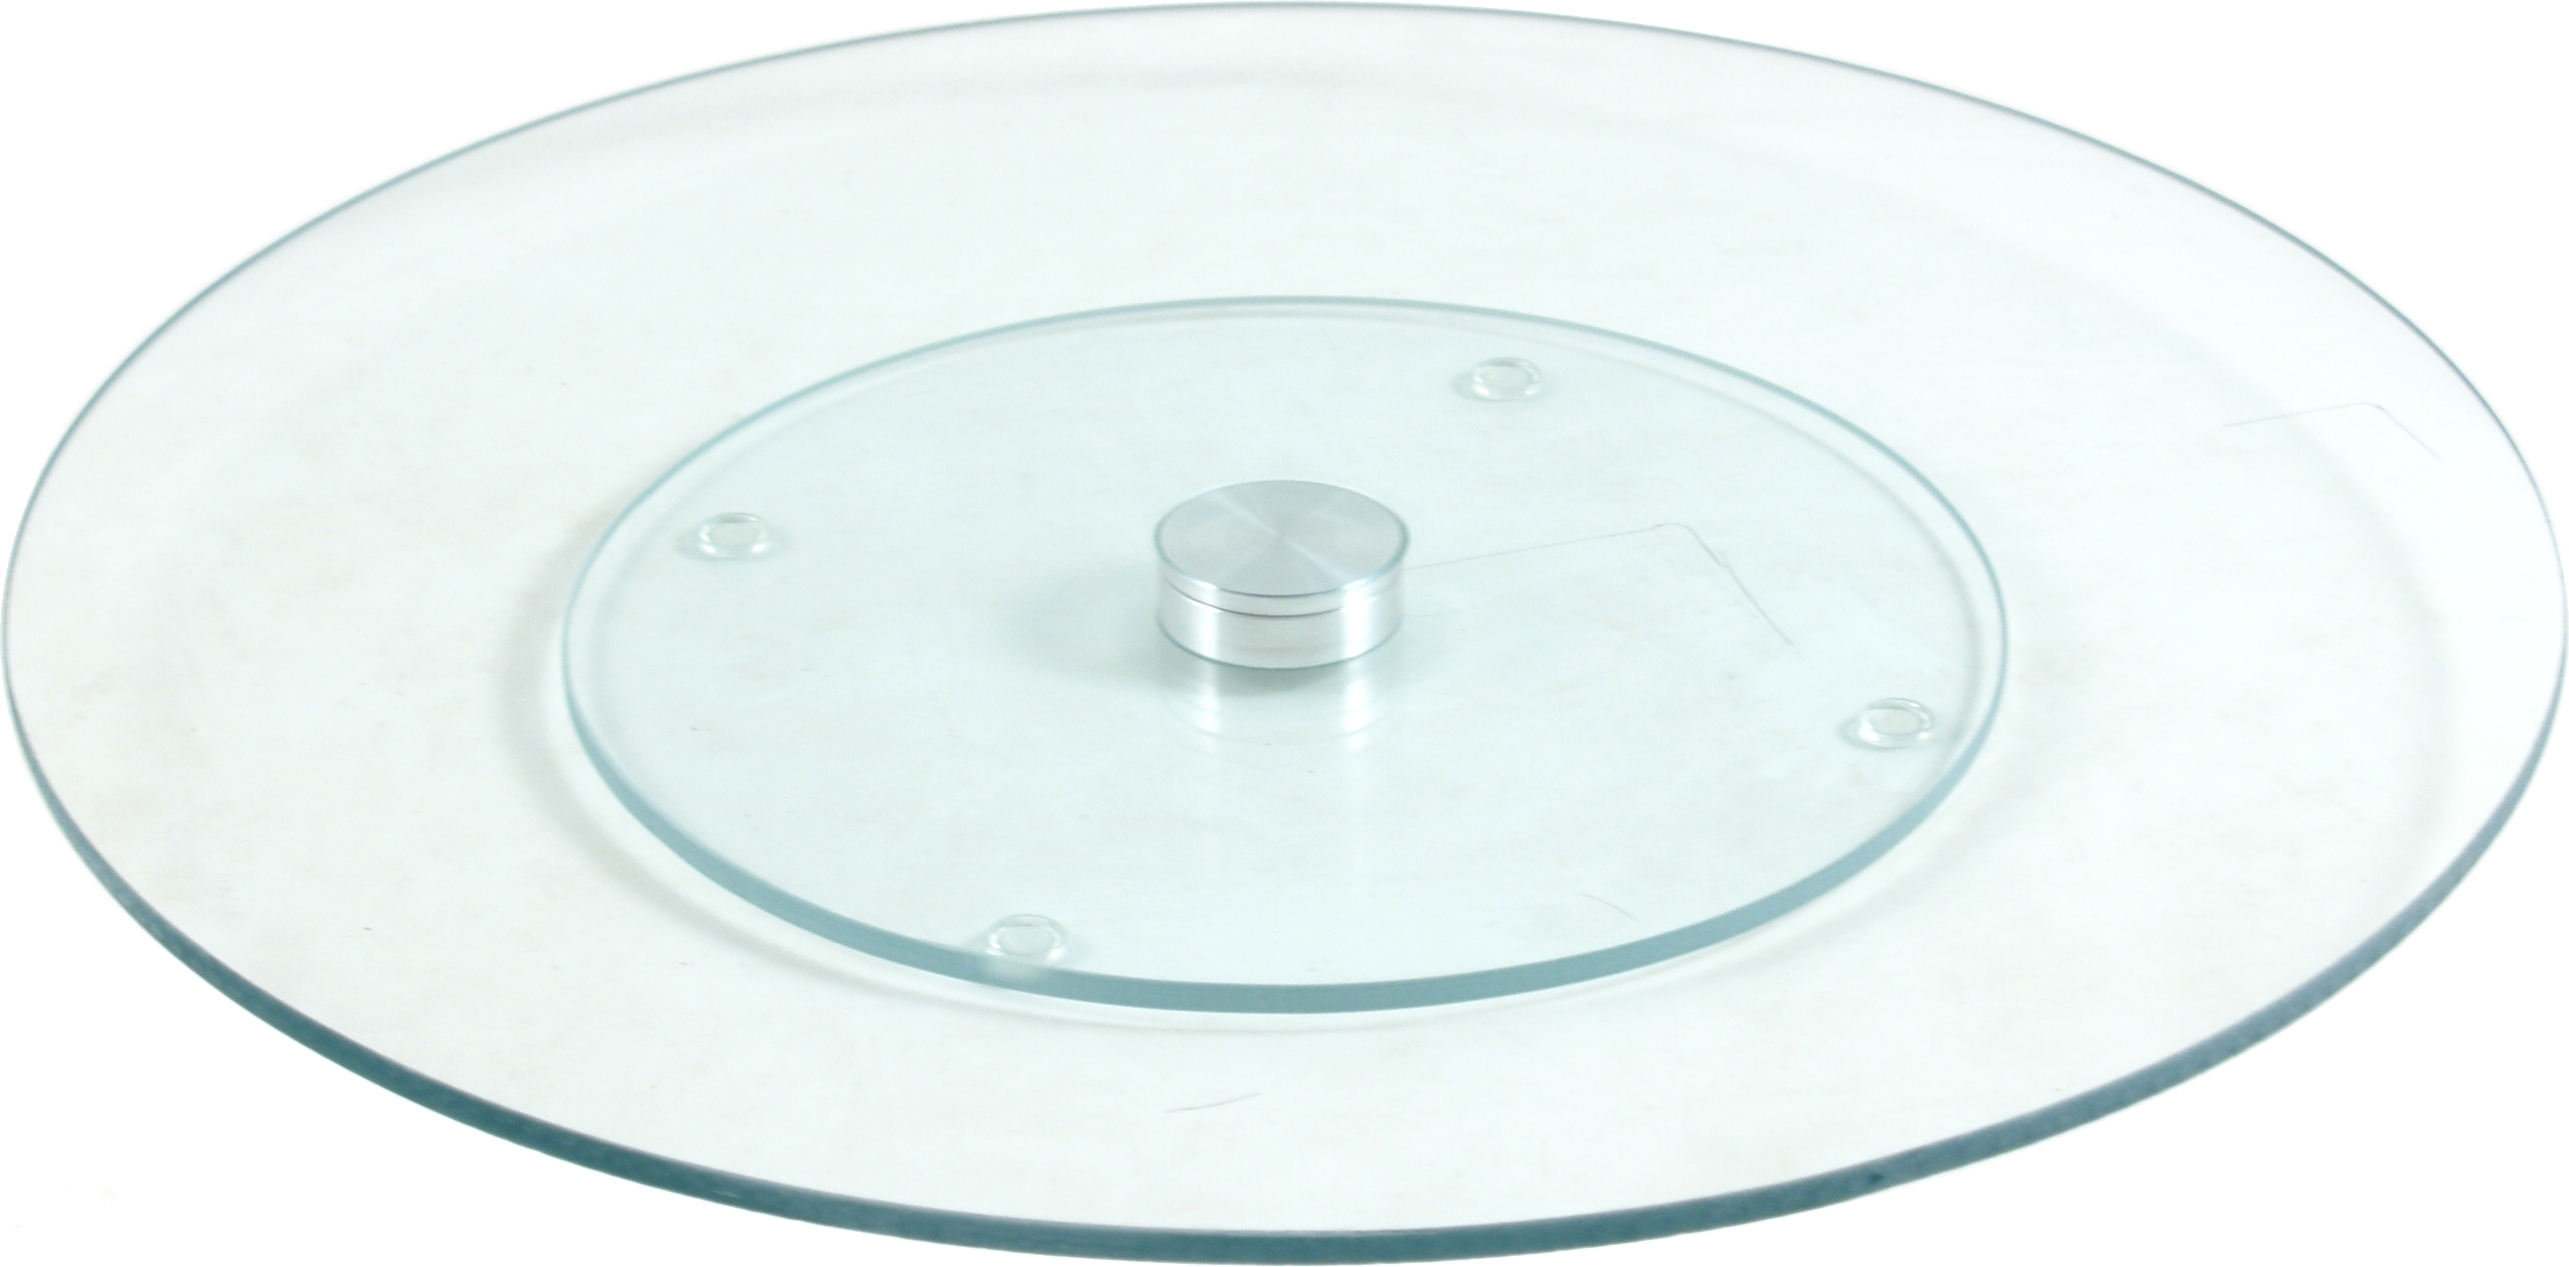 Glass Lazy Susan Rotating Tray, 13.75 Inch